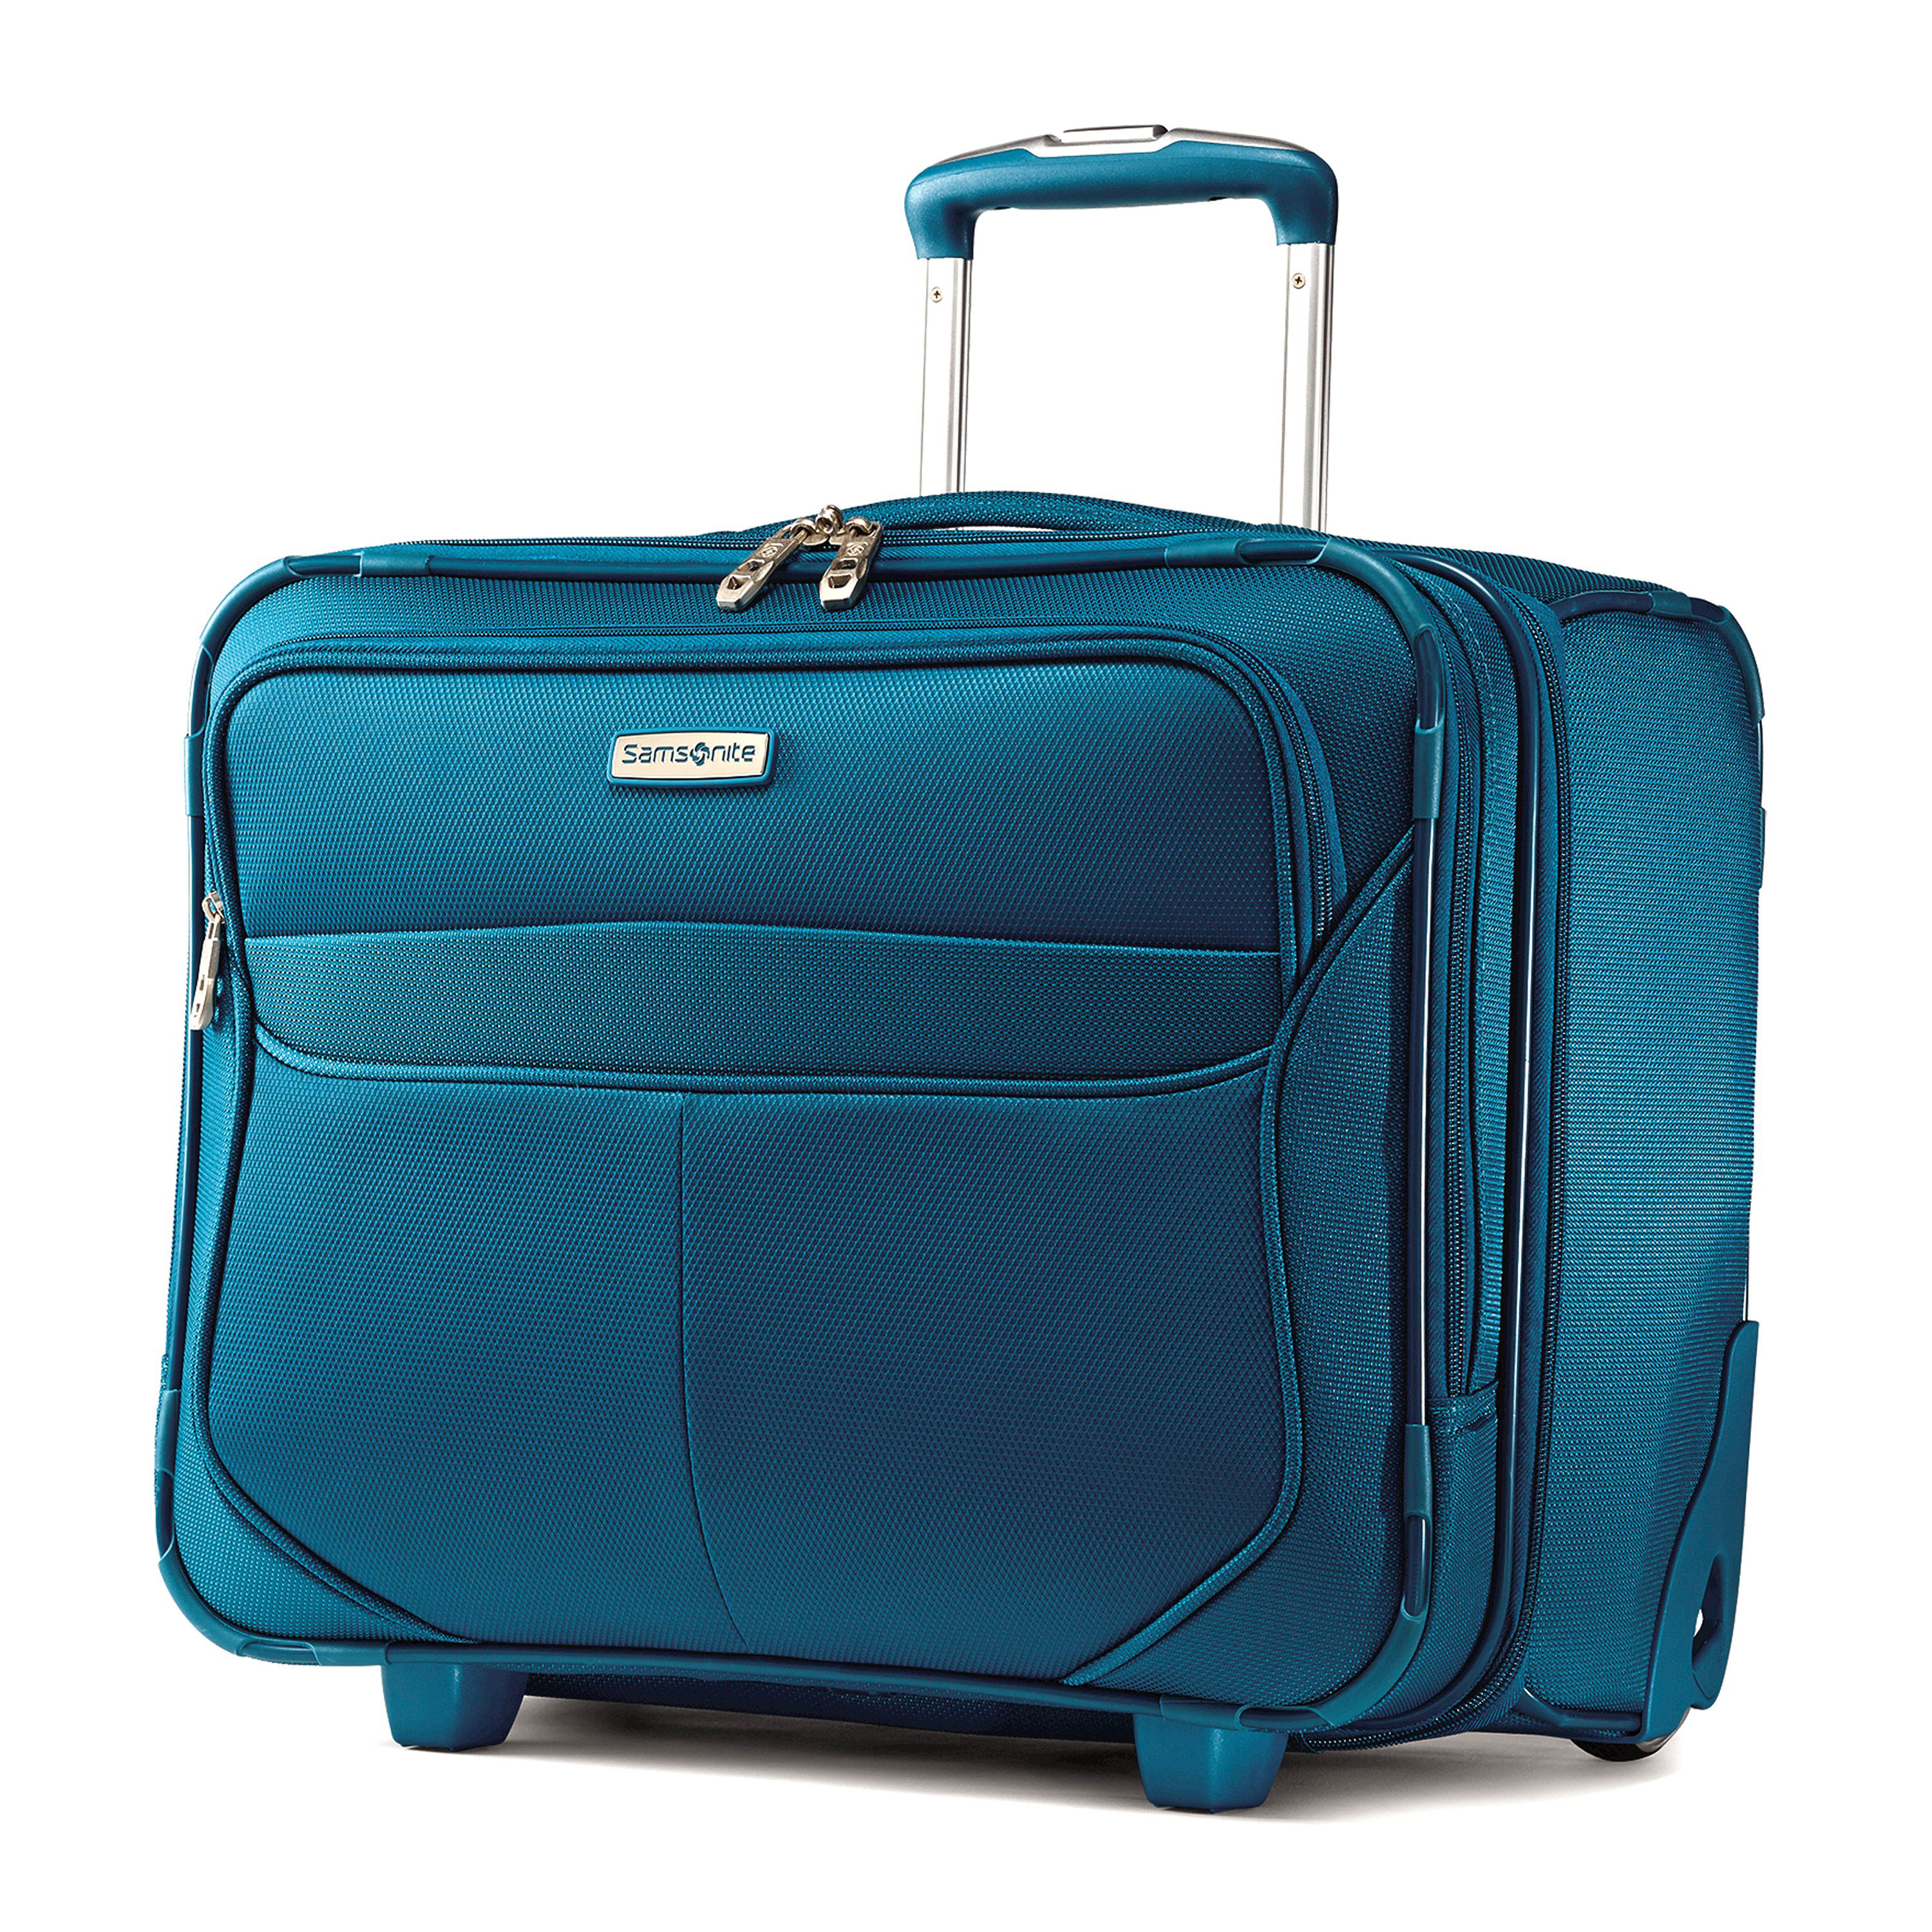 Save on travel bags with Samsonite luggage clearance online! Shop a variety of clearance items including laptop and Macbook sleeves, cases, and backpacks. Samsonite.